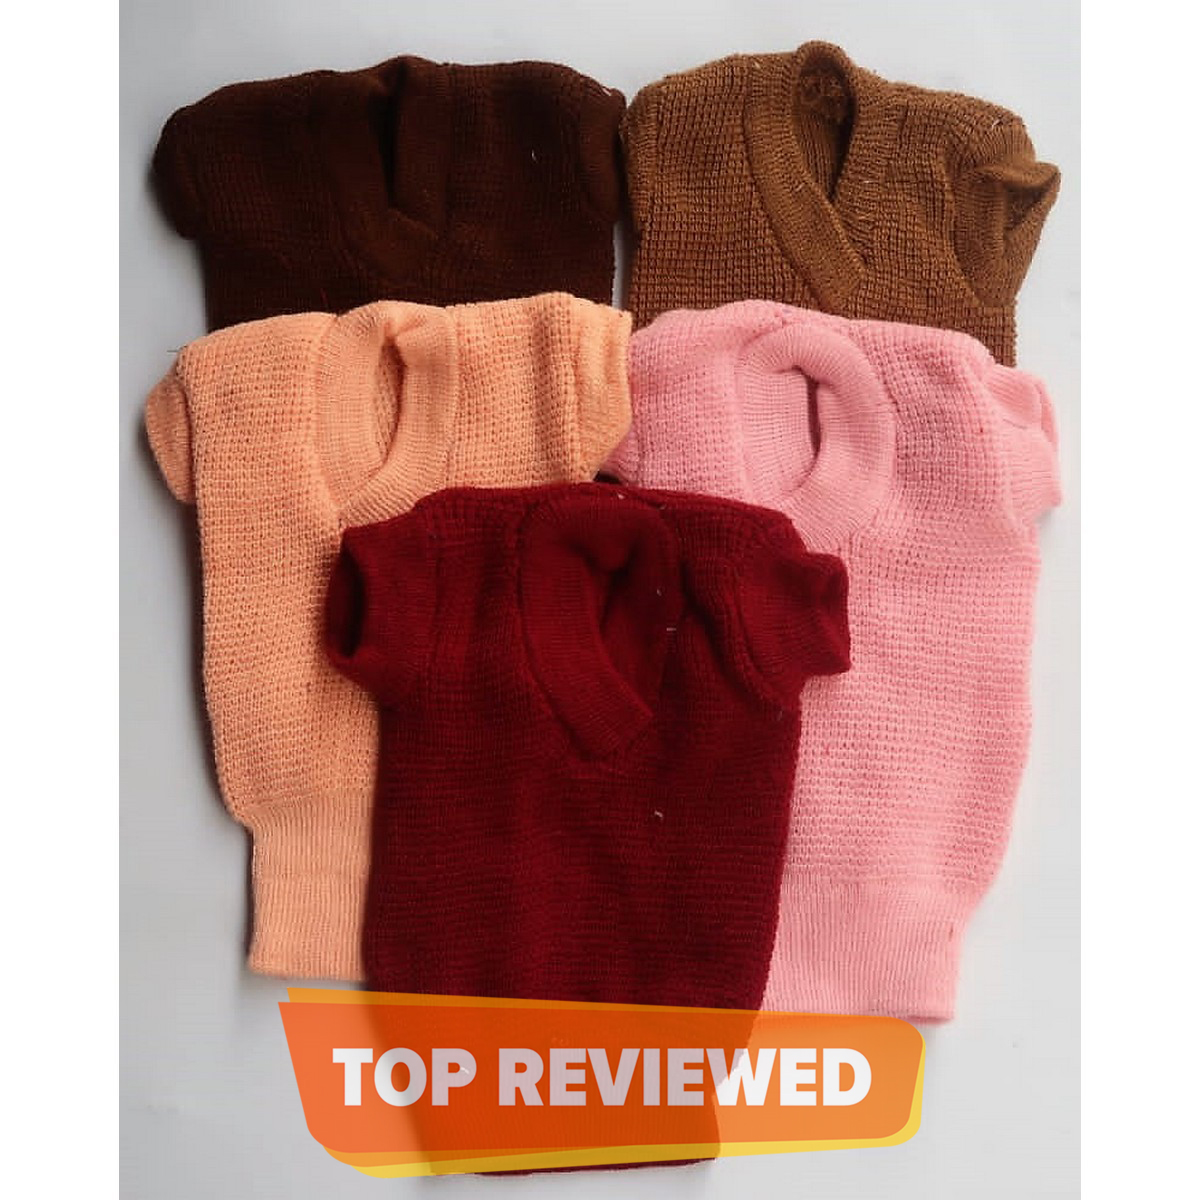 Pack of 3 - Inner Woolen Sweaters for New Born Babies